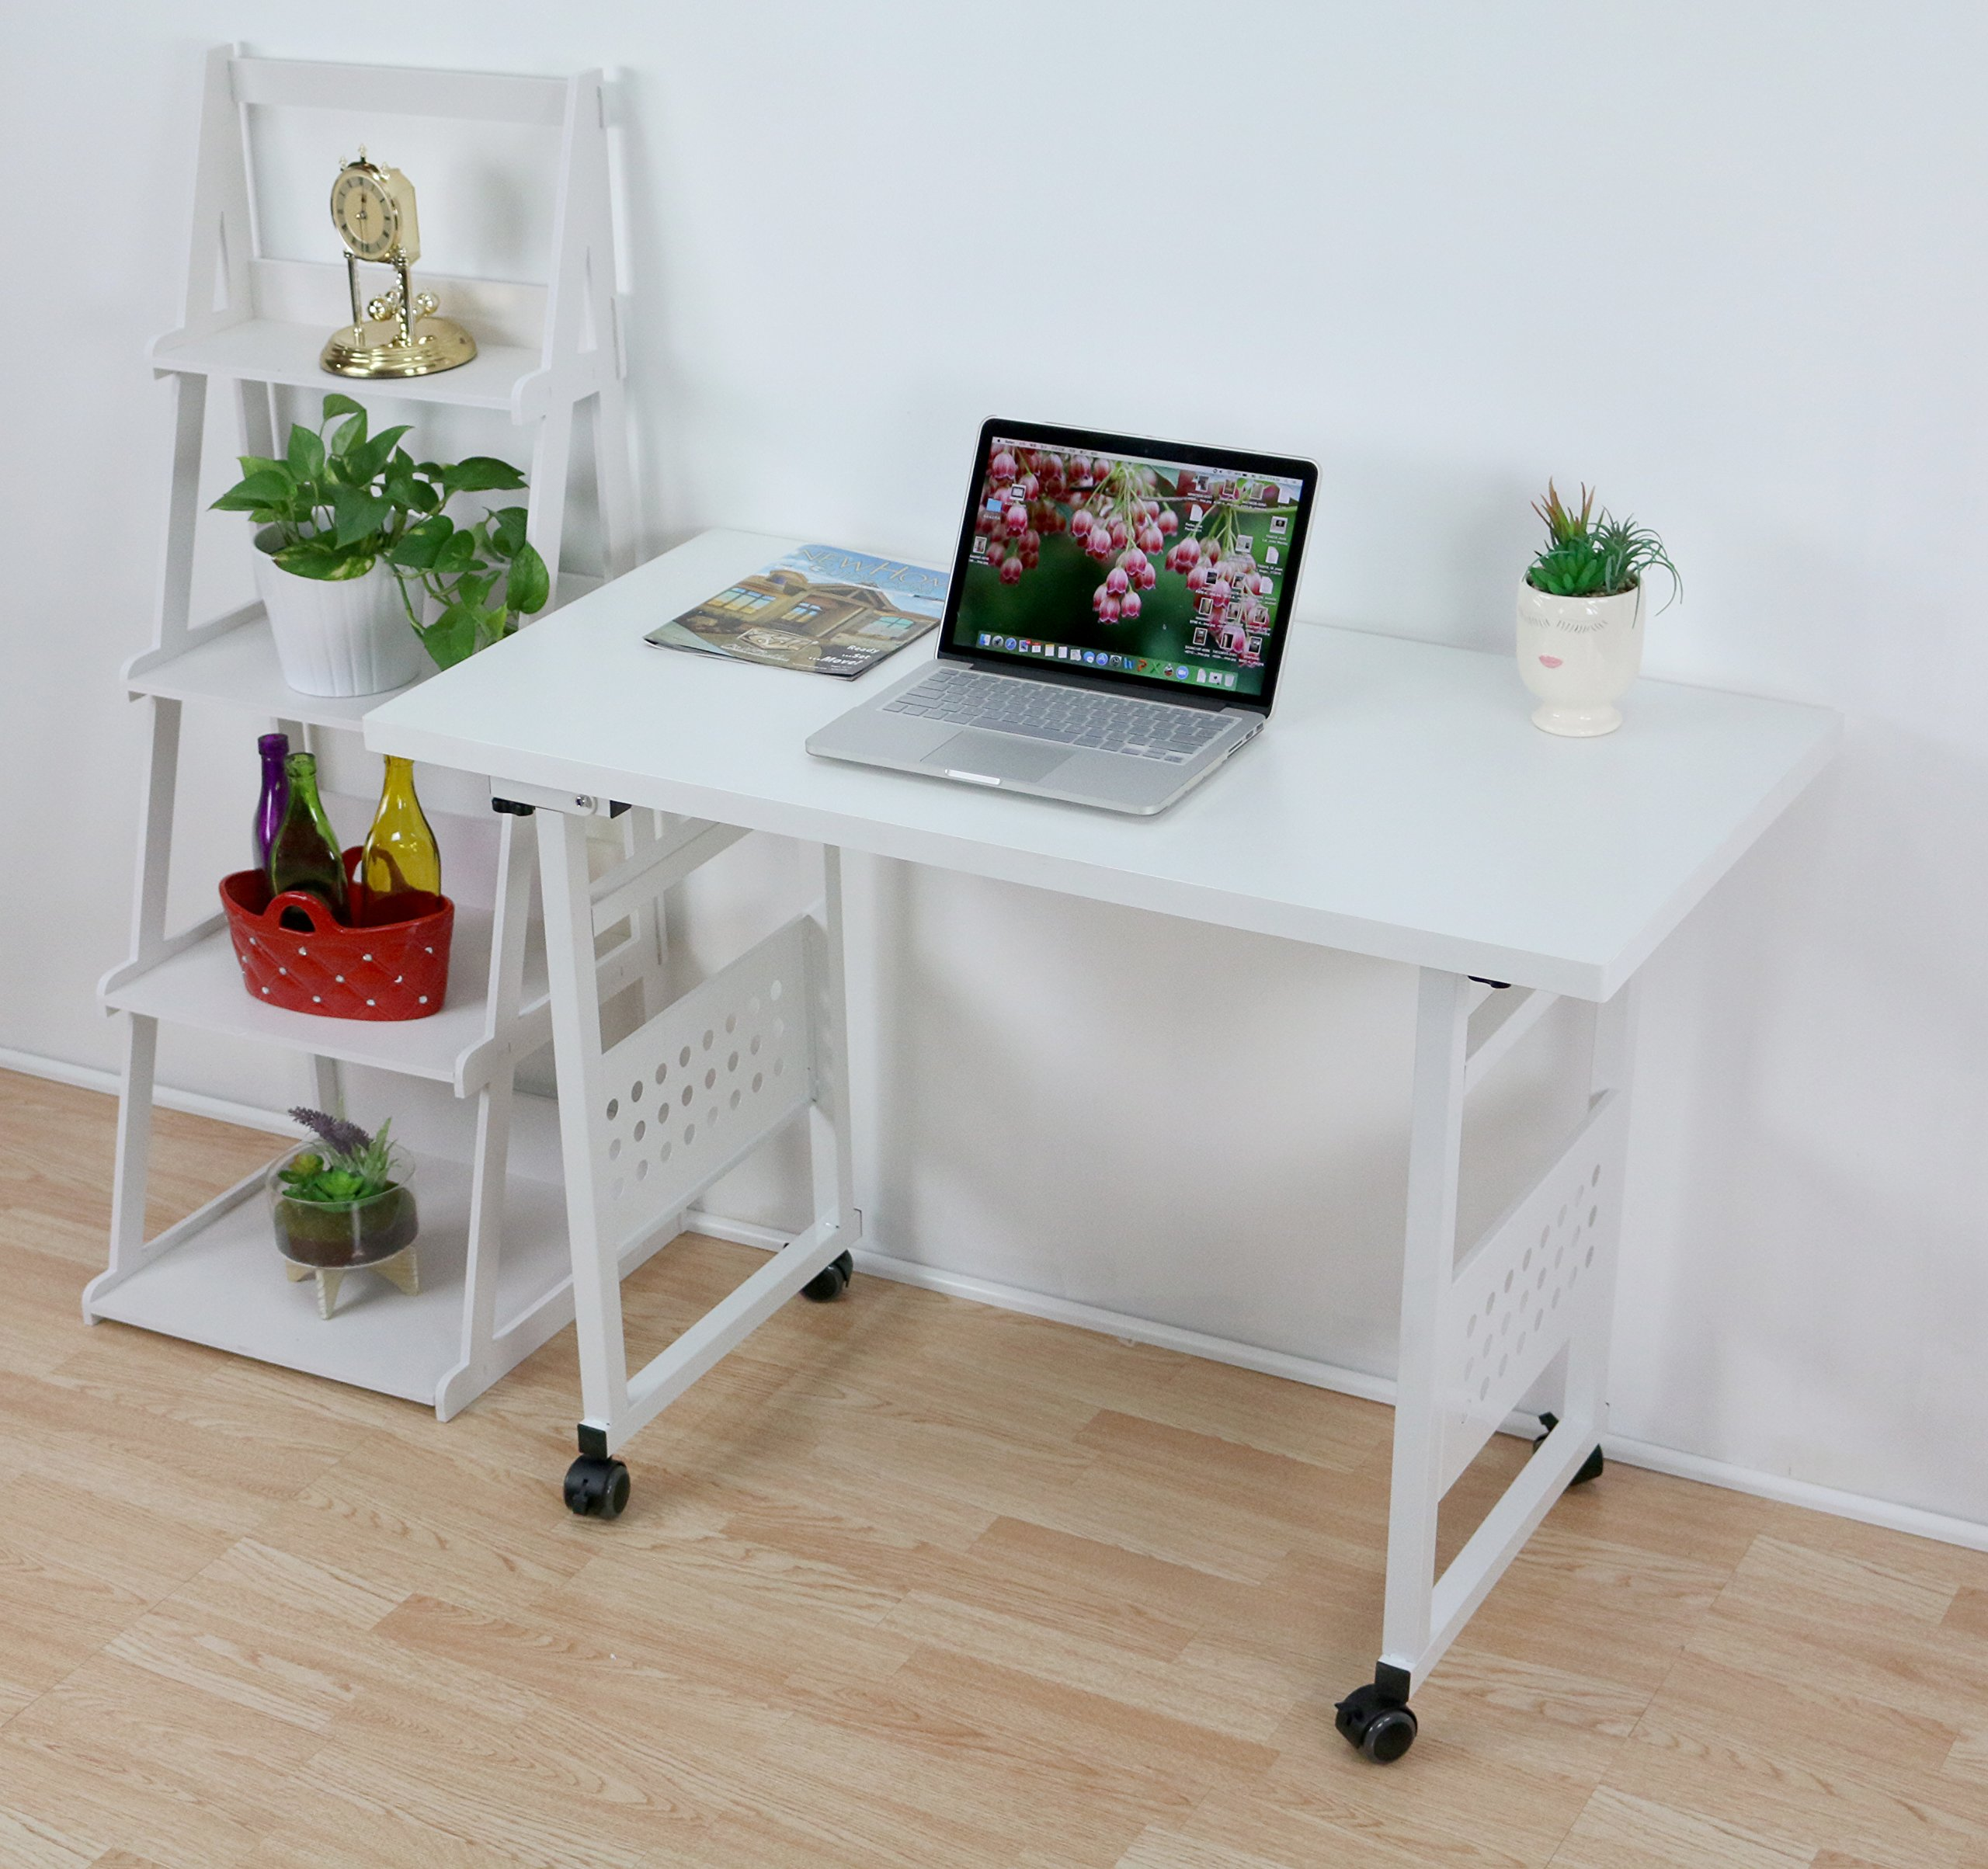 UNICOO - Folding Computer Desk, Folding Table, Folding Office Desk Workstation No Assembly Required With Wheels For Home Office Use (U201-White)